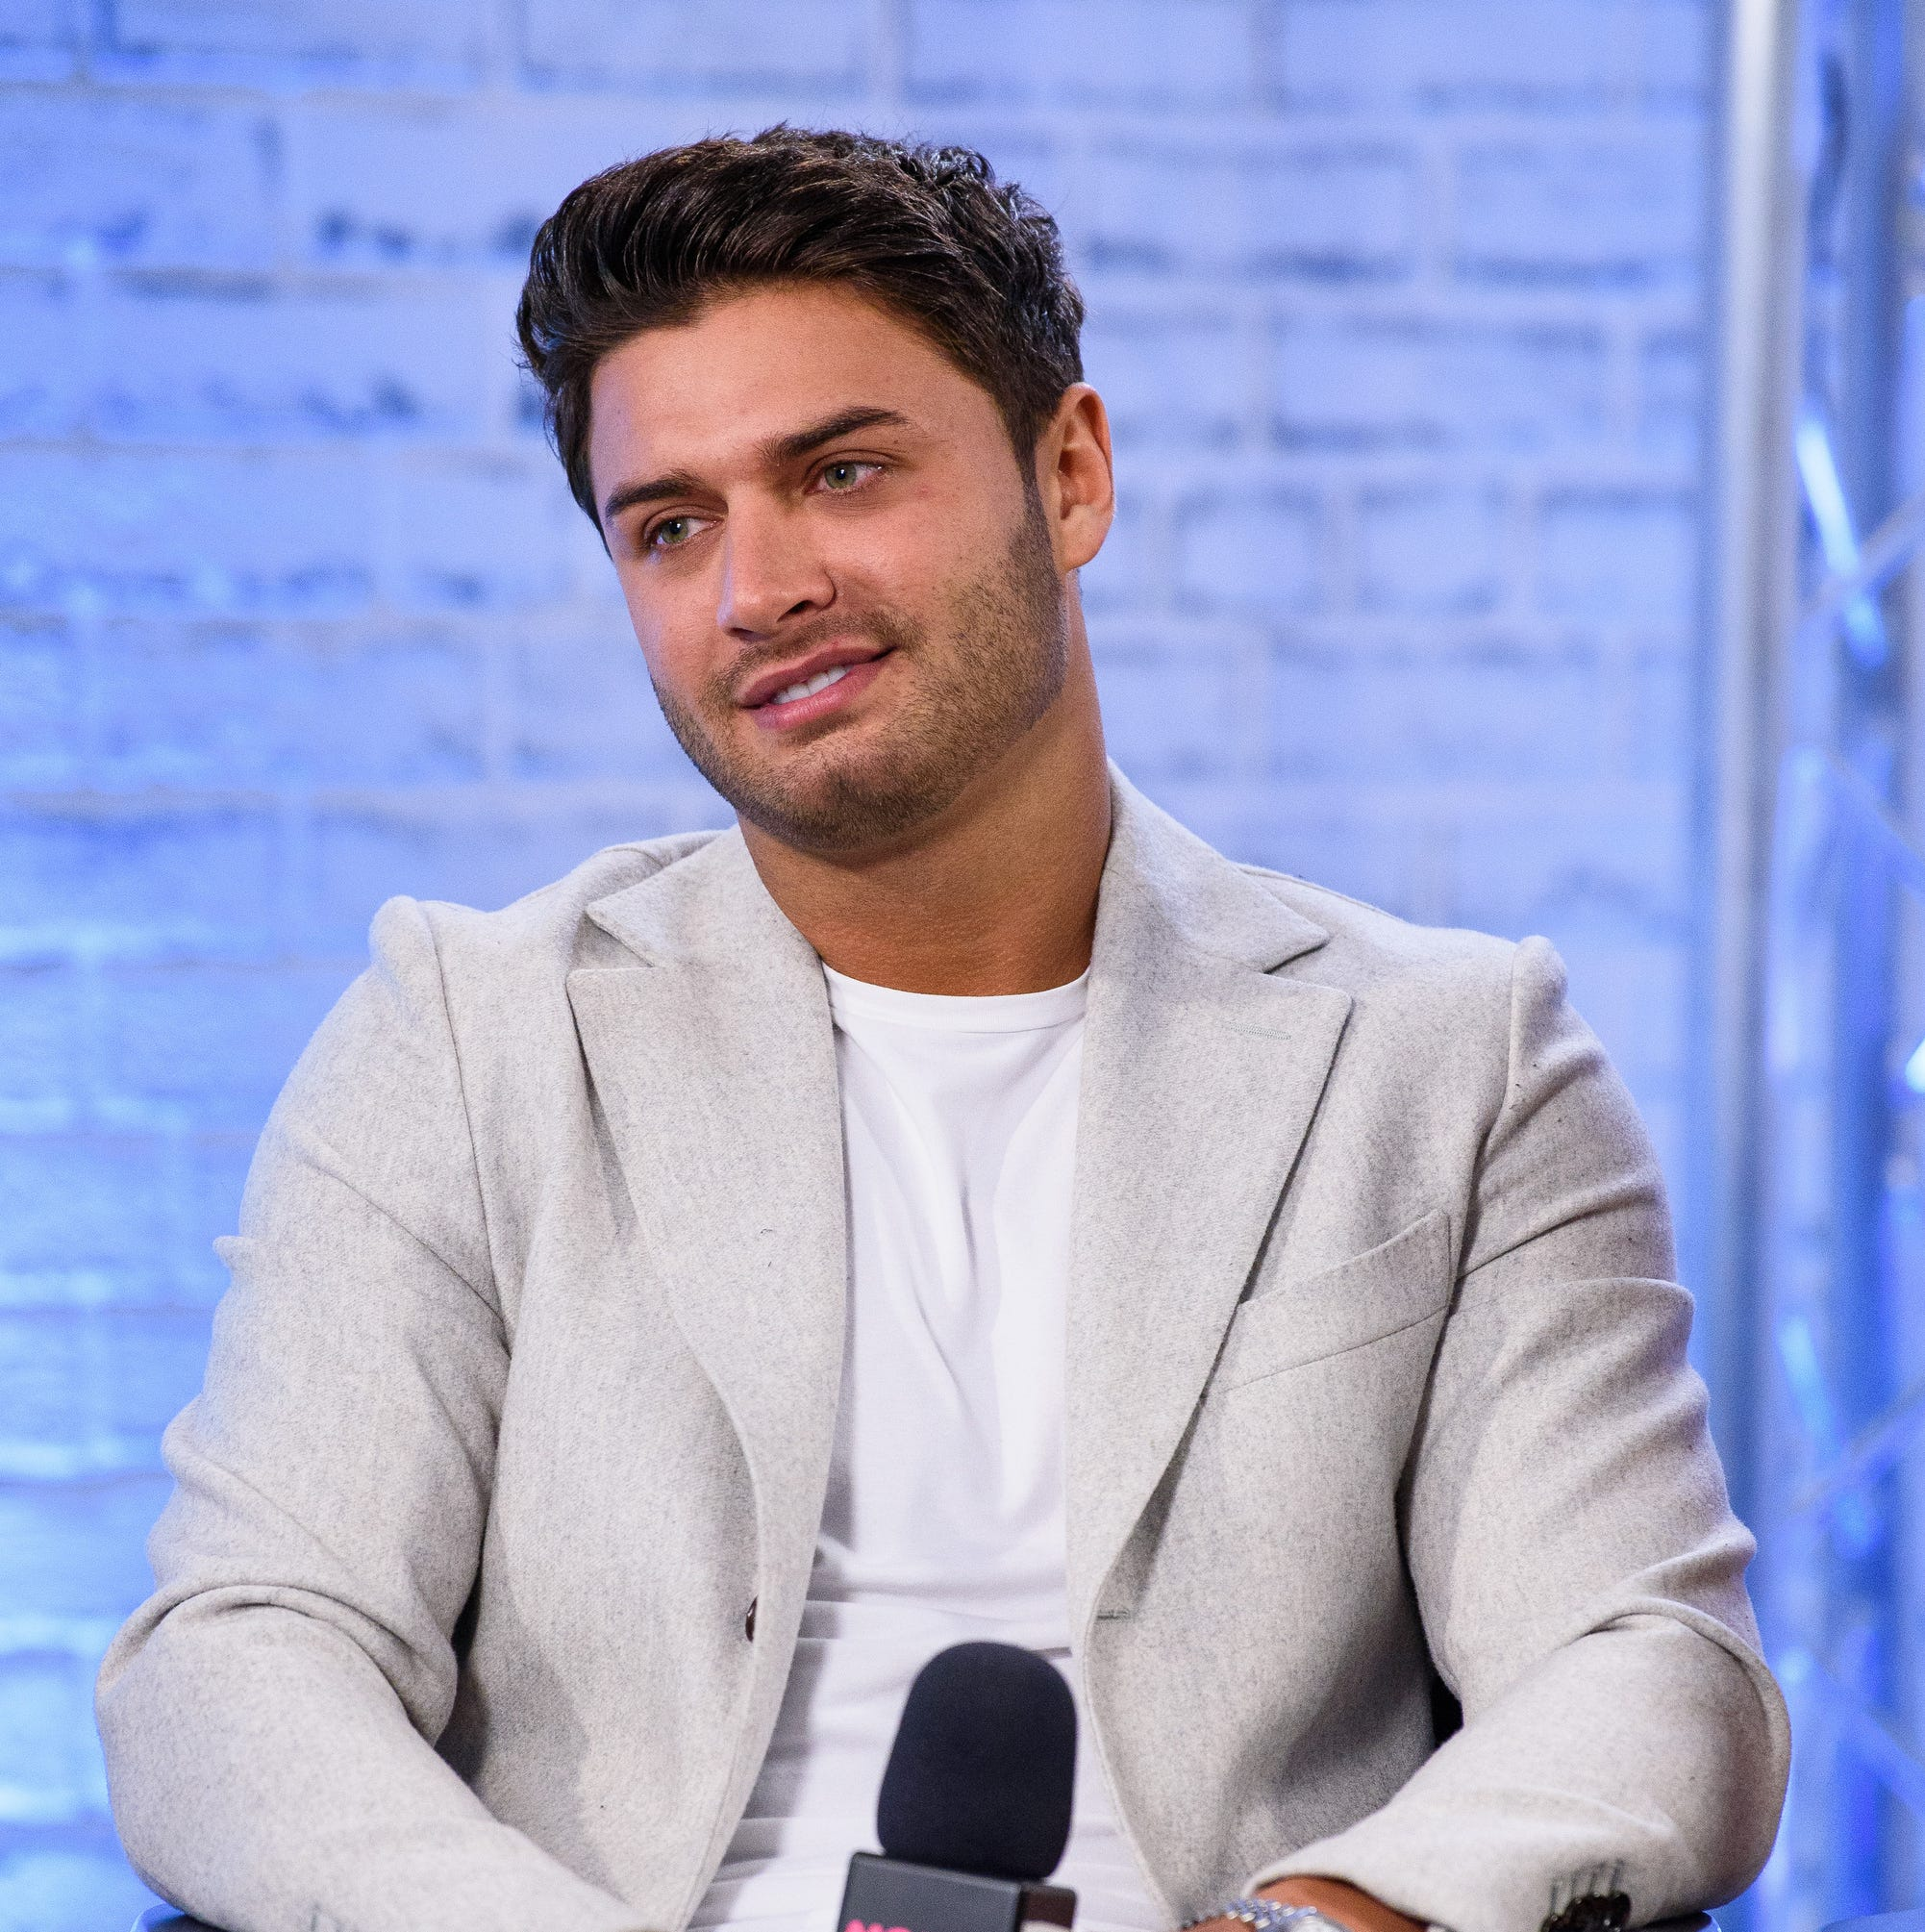 """Mike Thalassitis of """"Celebs Go Dating"""" during a panel discussion on Feb, 7, 2018, in London."""